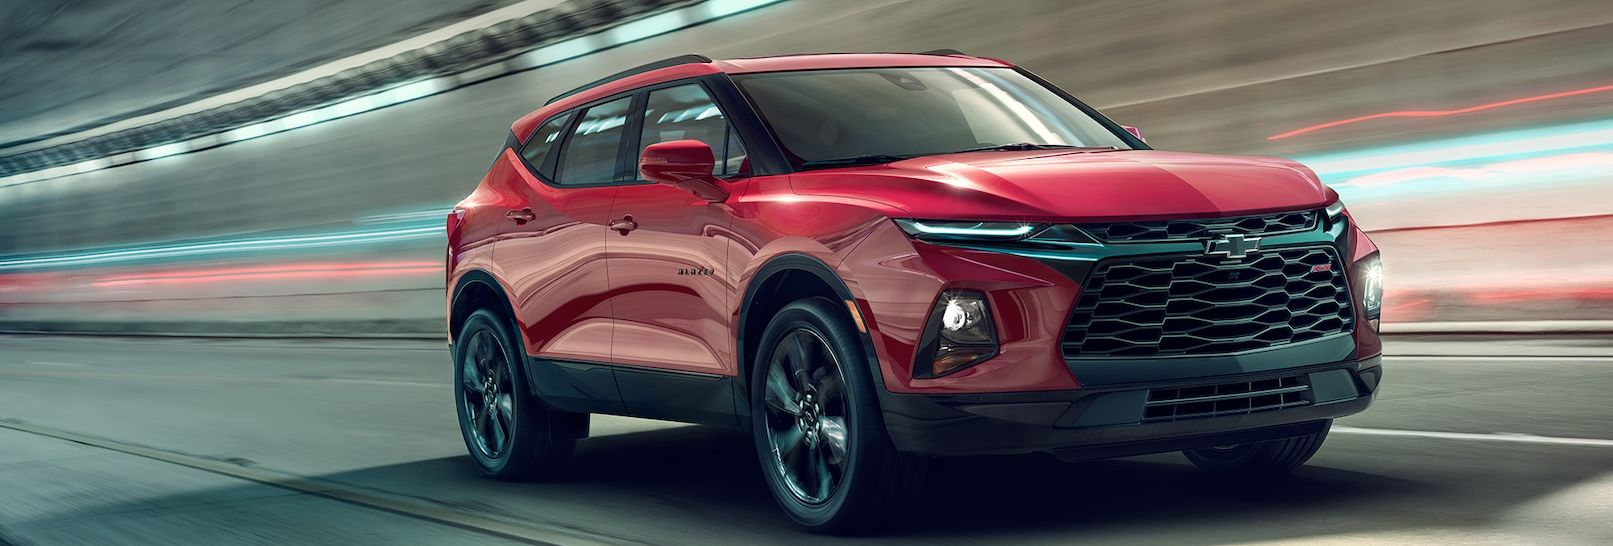 2019 Chevrolet Blazer Financing near Merrillville, IN